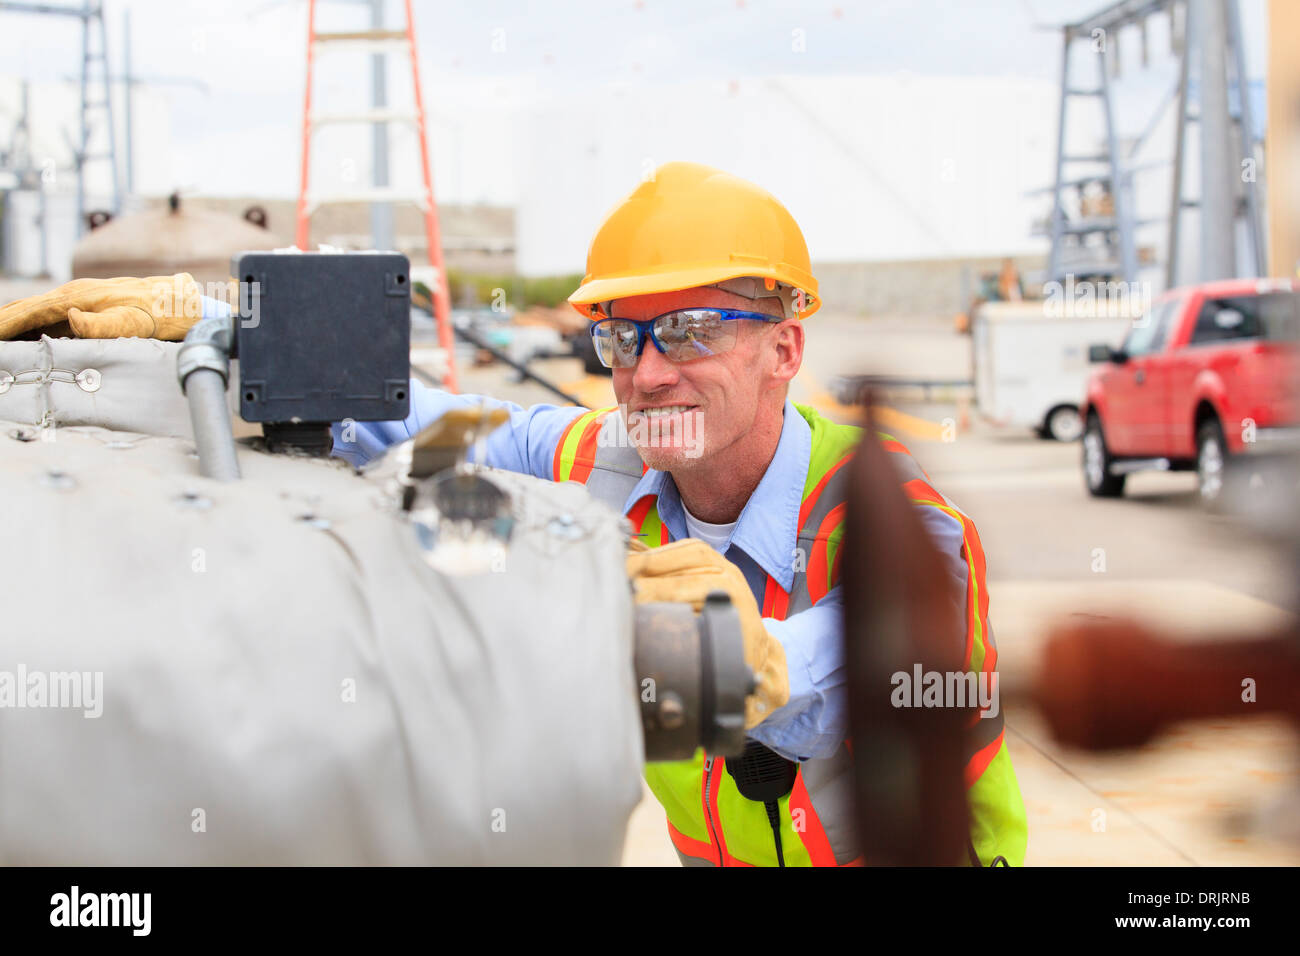 Electrical engineer examining pressure sensor at an electric power plant - Stock Image